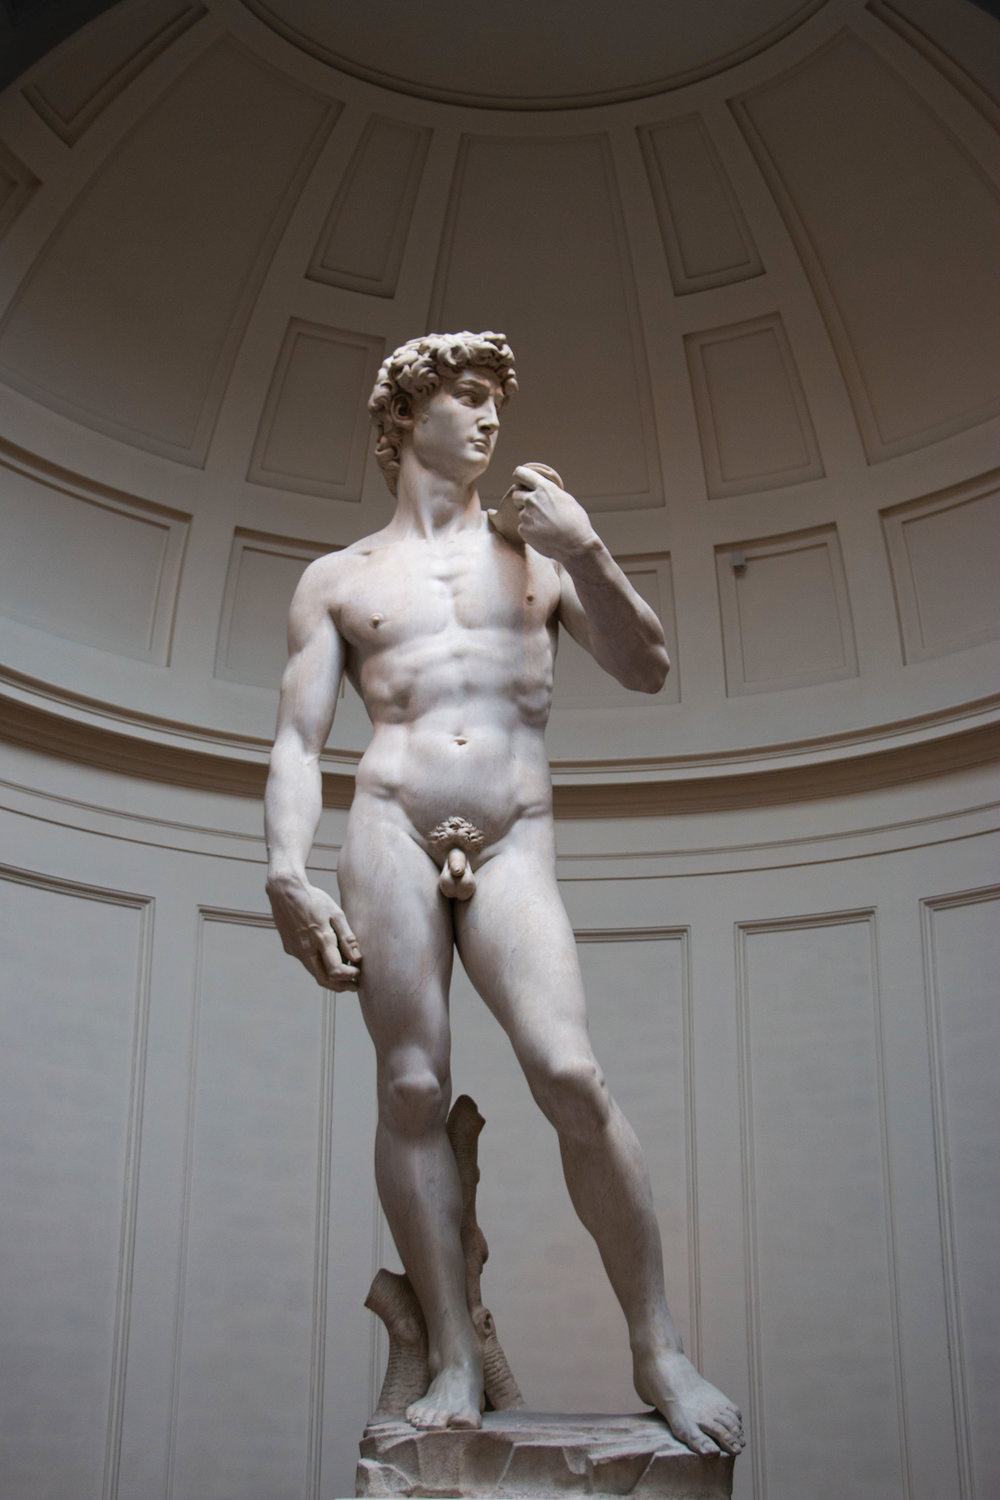 Five years after his Pieta gained him acclaim, 29-year-old Michelangelo debuted David and carved his reputation as a master sculptor of the Renaissance. Shoriful Chowdhury / Shutterstock.com